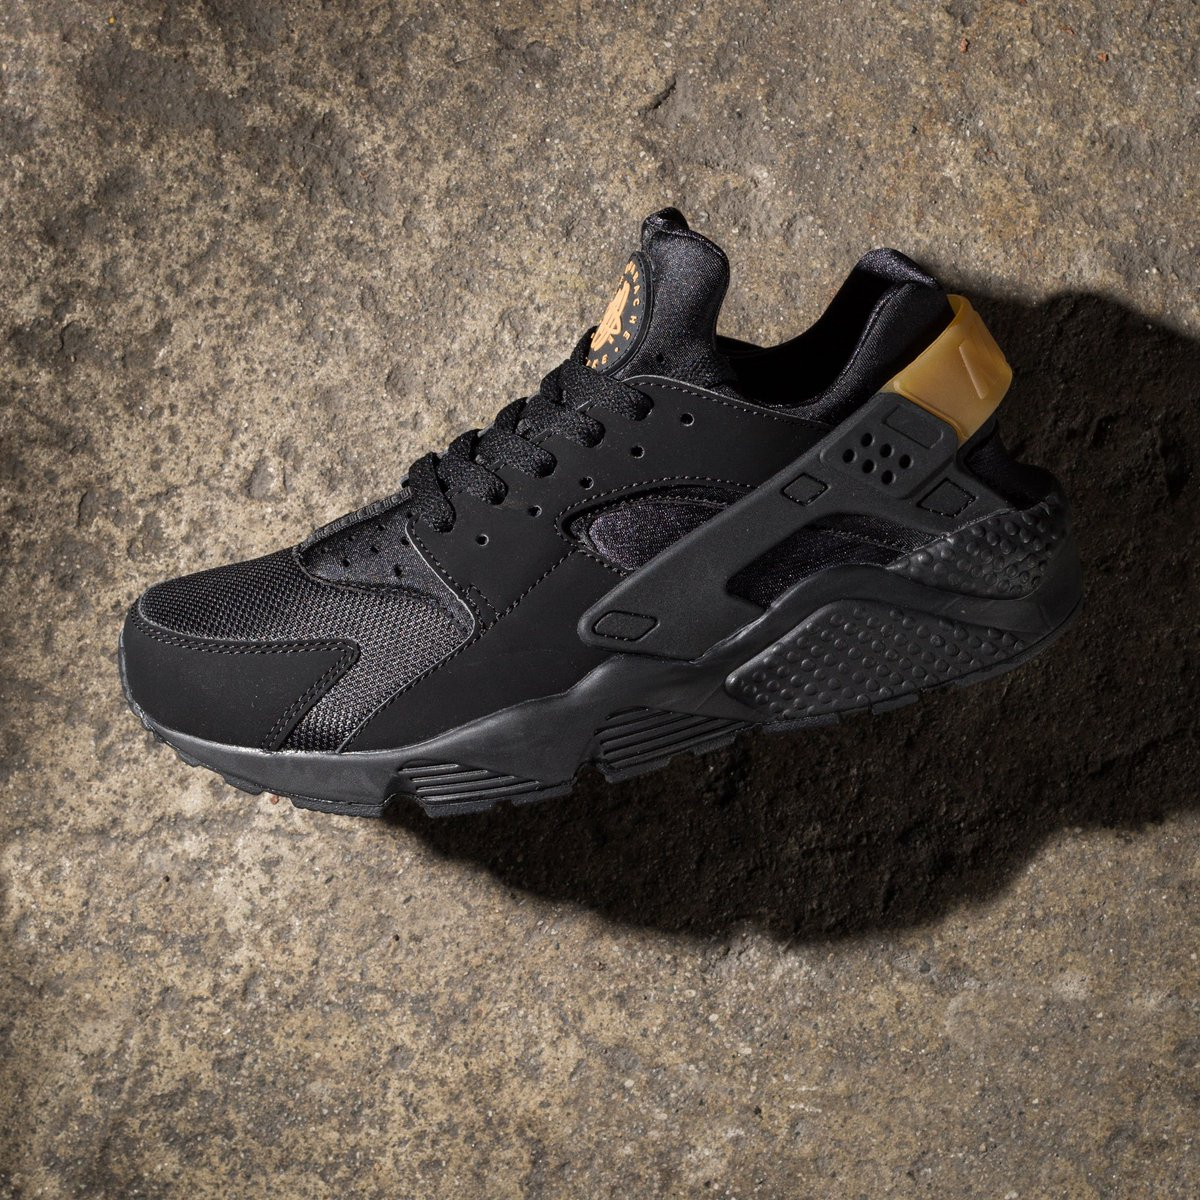 d02eddee63f3 shop sweetheart nike air huarache sz 7 5 pack run black metallic gold 36lq  9691 for men 8c90a 8b42f  official undefeated on twitter nike air huarache  run ...